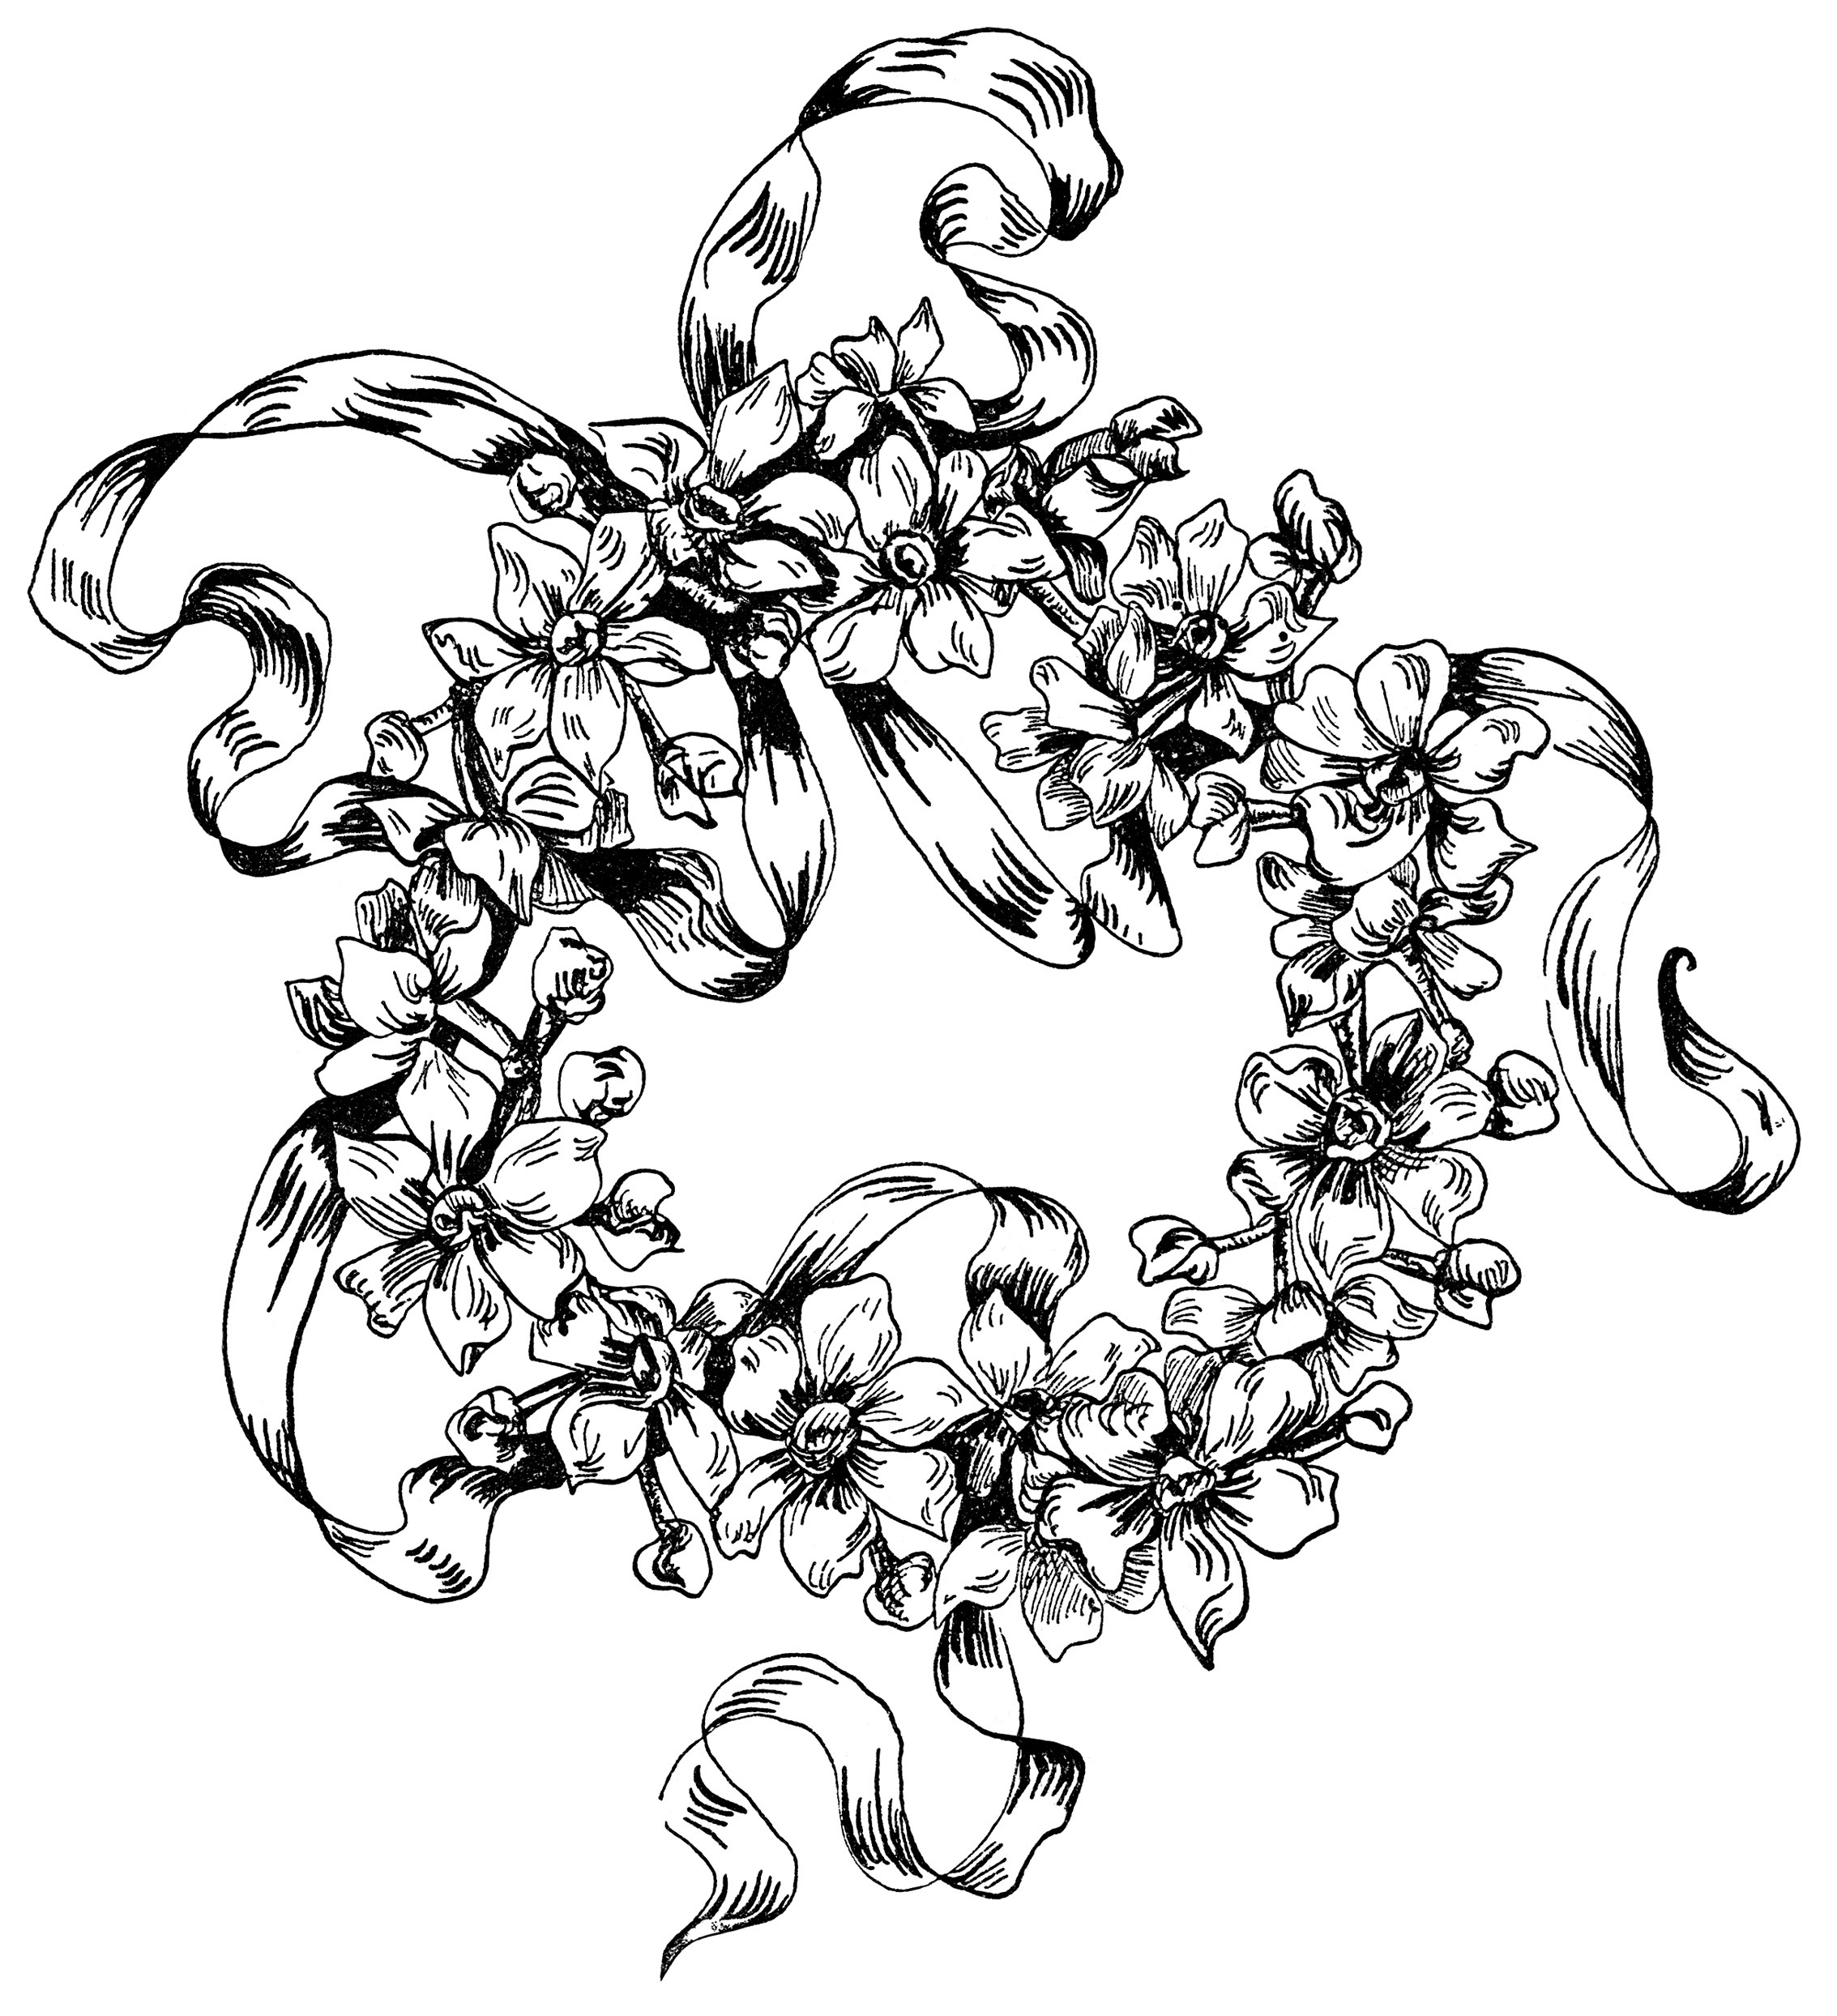 Drawn ornamental black and white Ornamental black clipart clipart flower